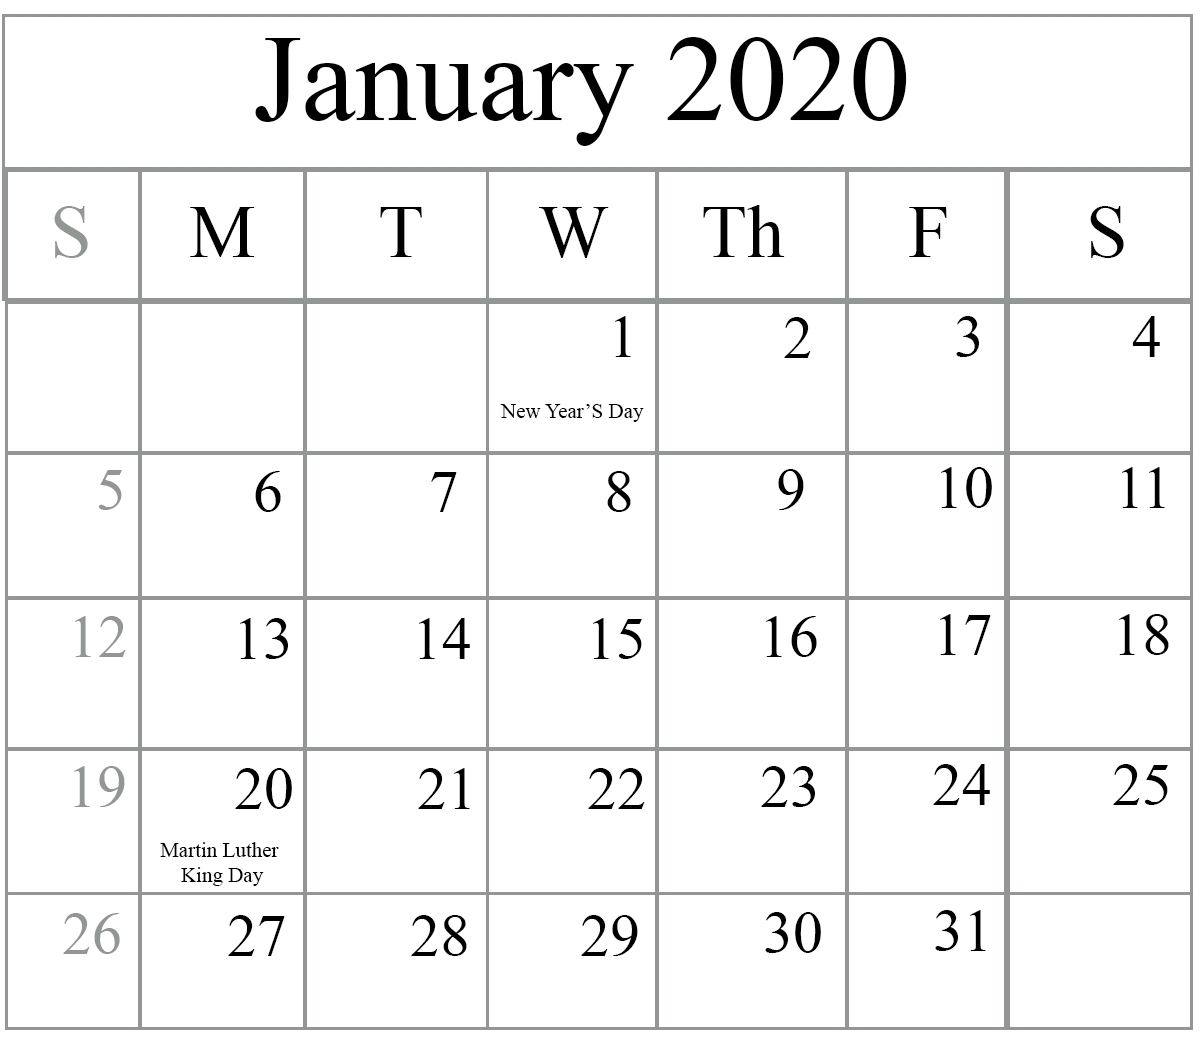 Free January 2020 Printable Calendar In Pdf, Excel & Word-Microsoft Word Calendar Templates 2020 Free